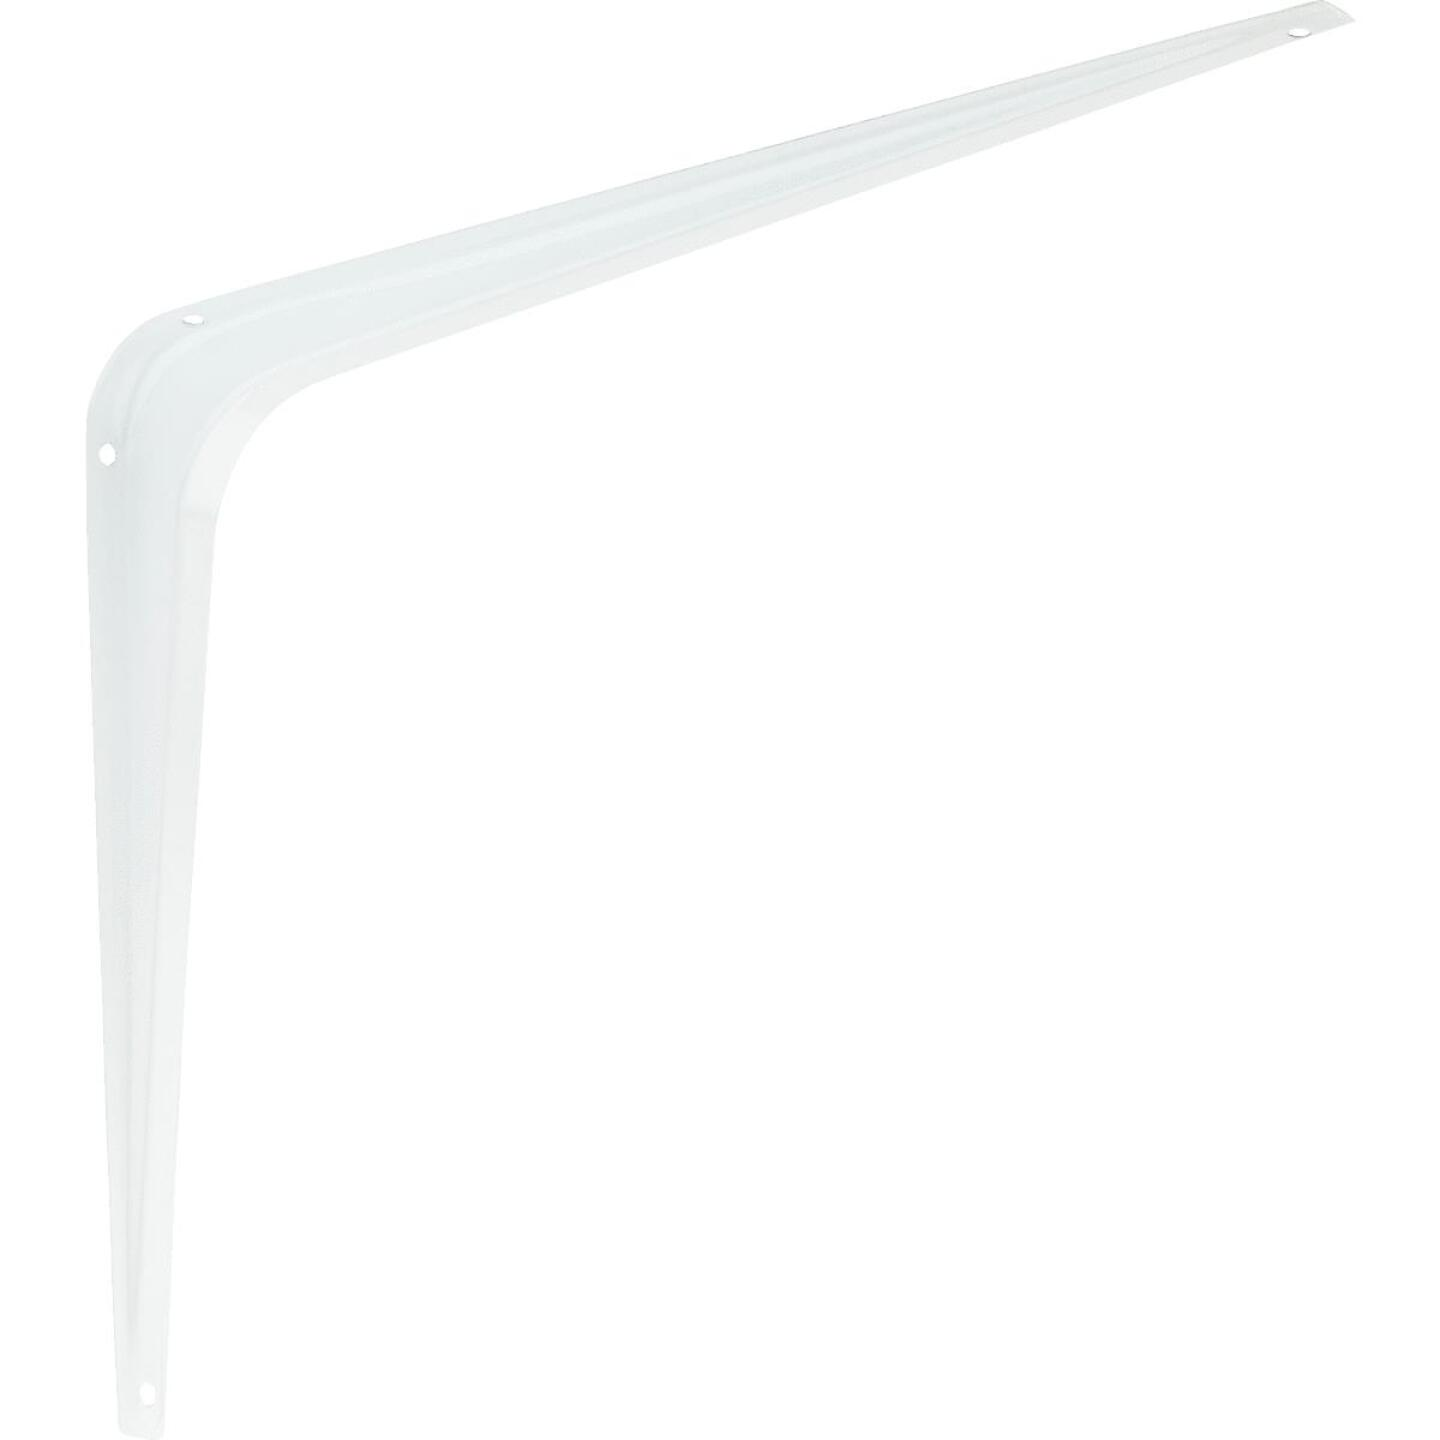 National 211 10 In. D. x 12 In. H. White Steel Shelf Bracket Image 1